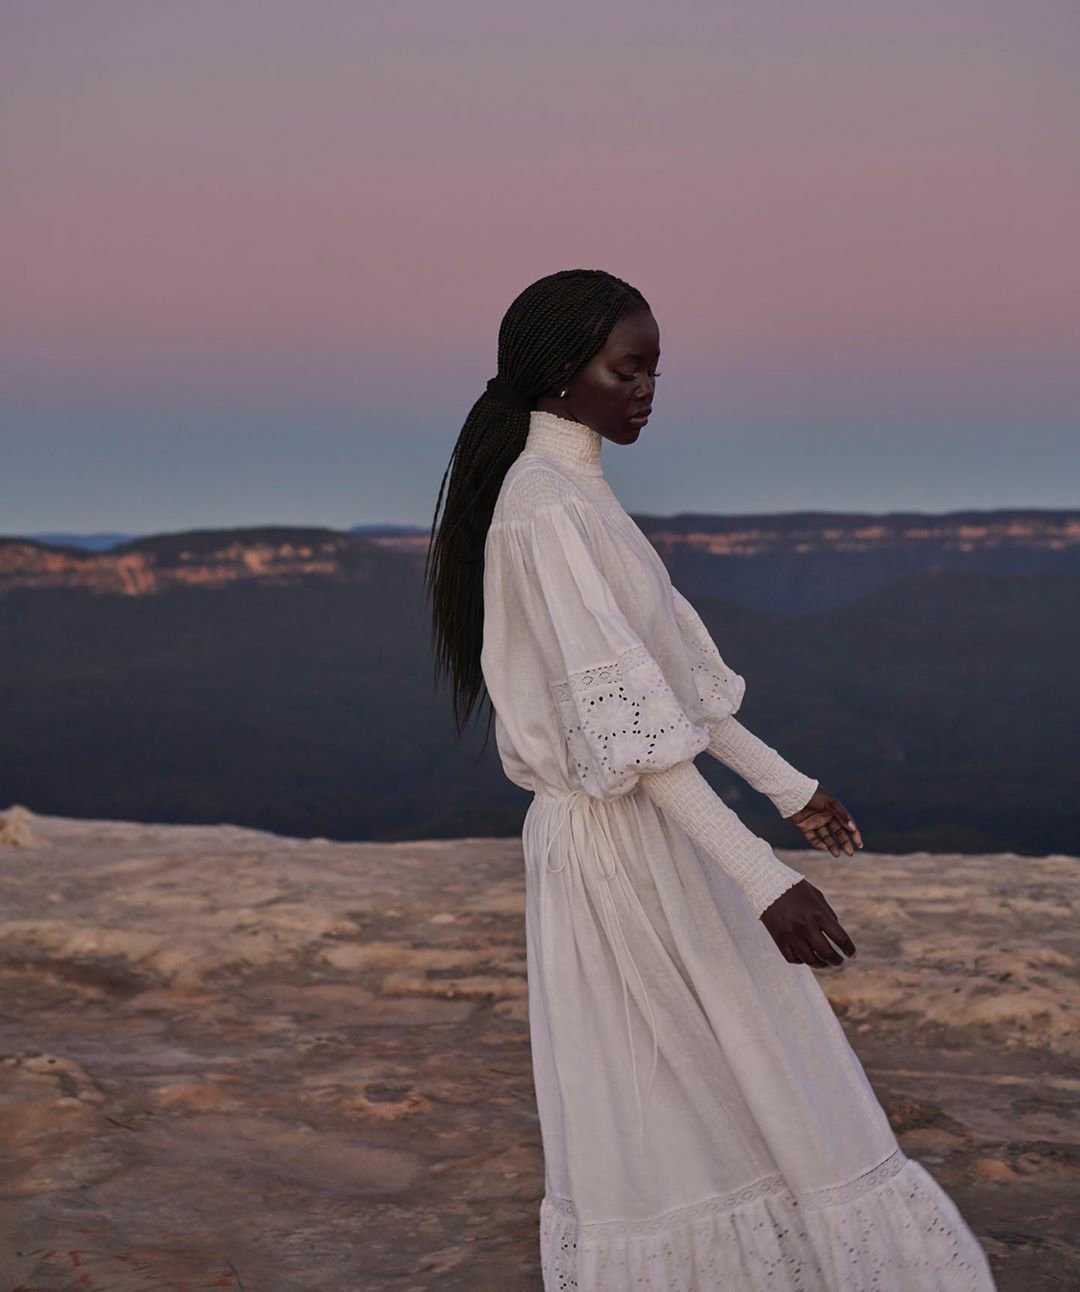 4adut akech shines in david jones spring 2020 campaign proves she looks good in everything5138544462510500119